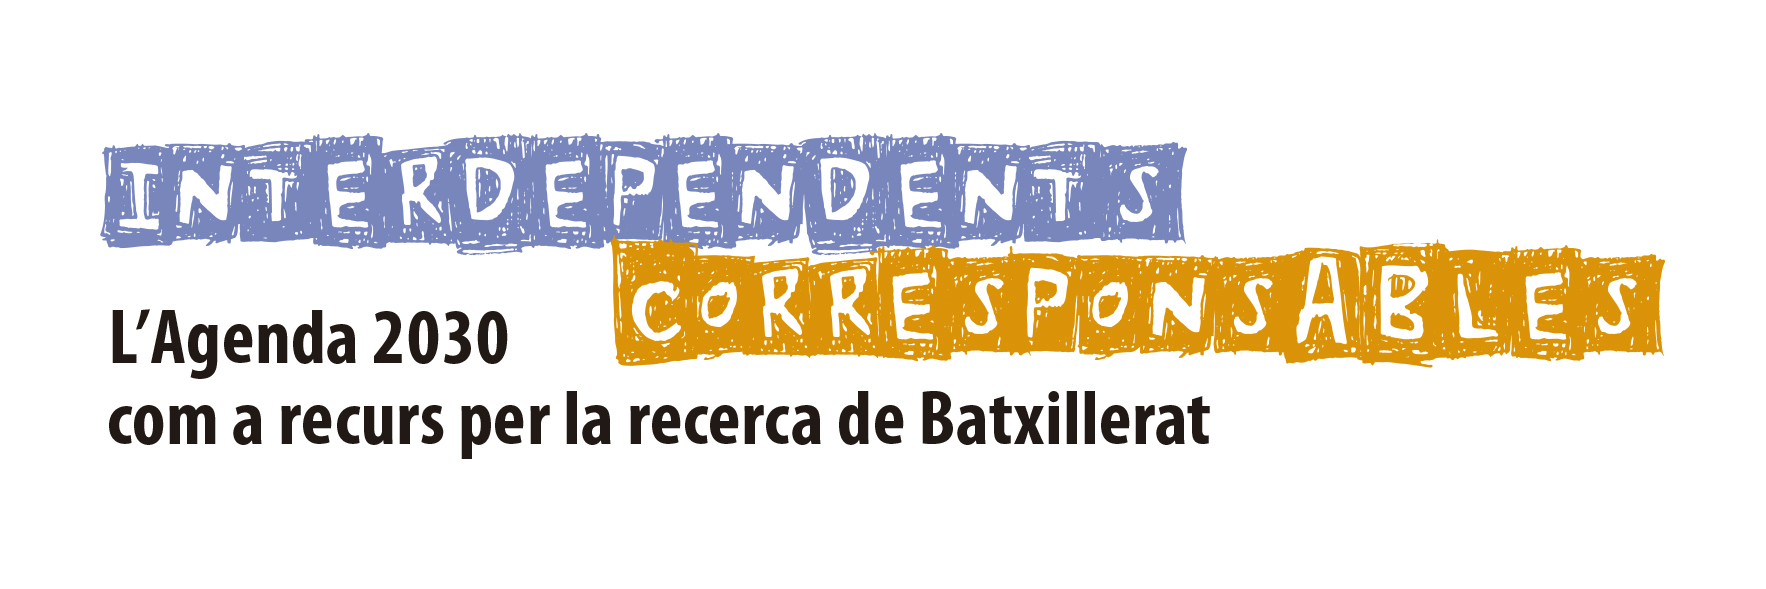 Interdependientes, corresponsables